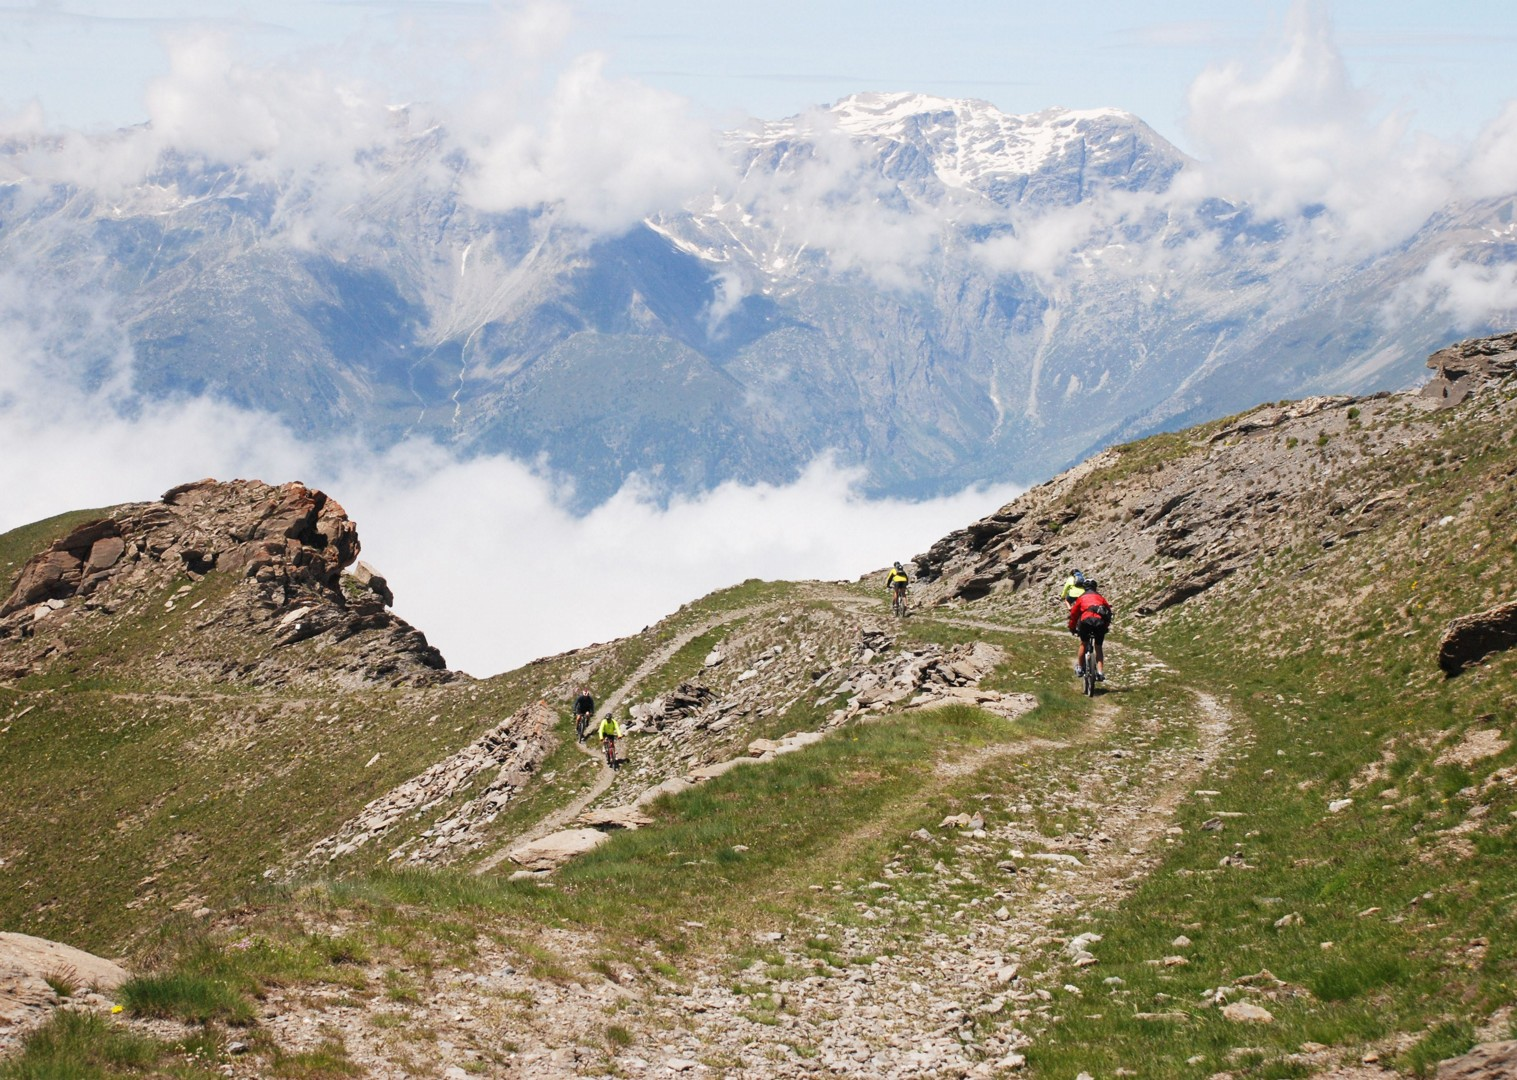 aussois-italy-and-france-alpine-adventure-guided-mountain-bike-holiday.JPG - Italy and France - Alpine Adventure - Mountain Biking